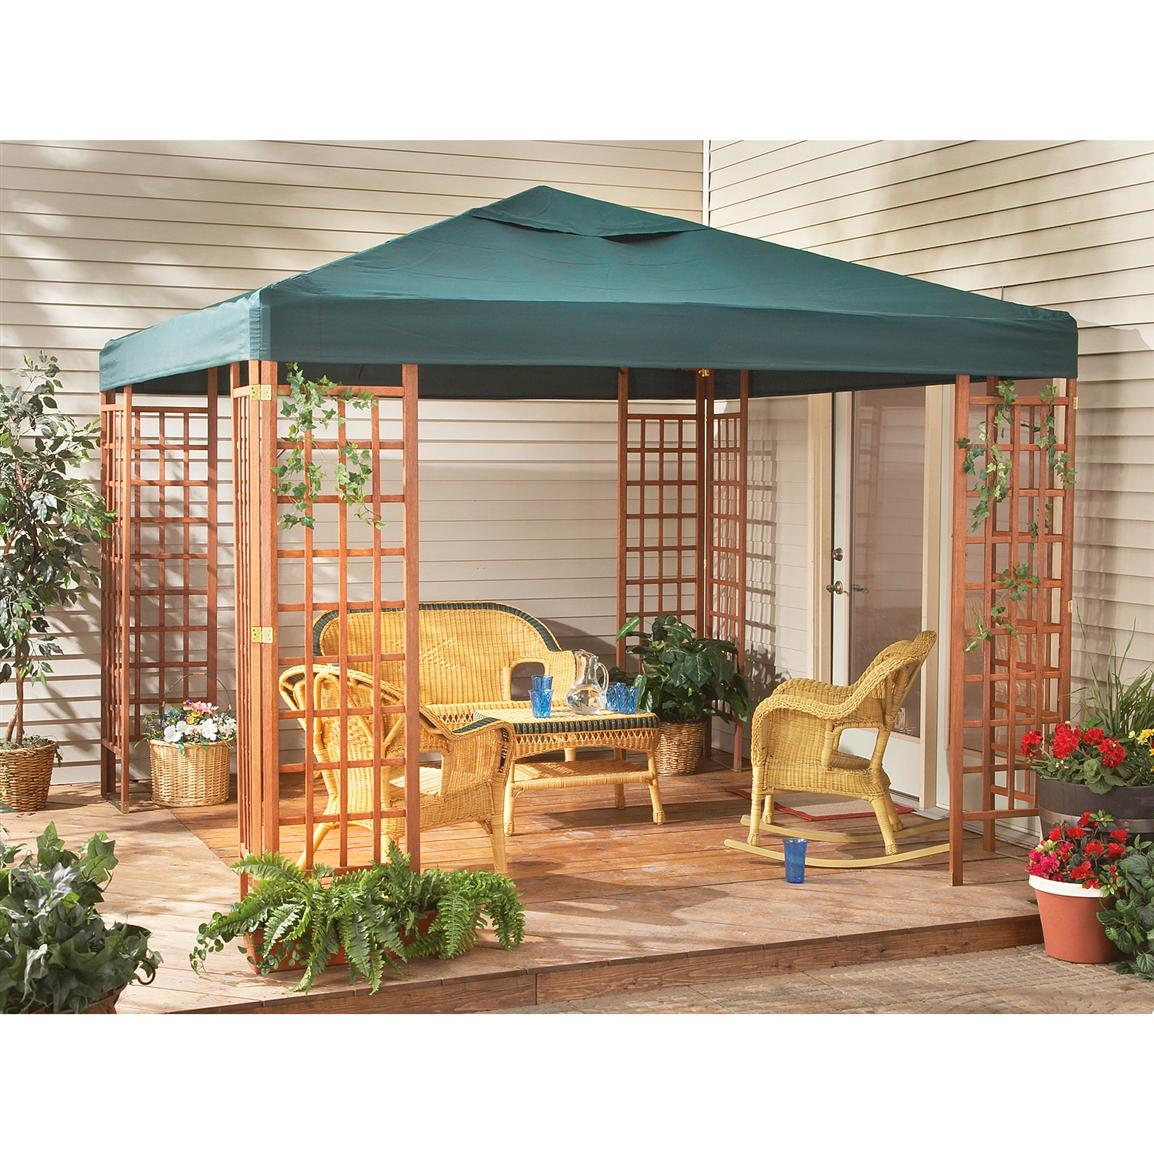 Cozy 10x10u0027 Wood Gazebo wooden patio gazebo